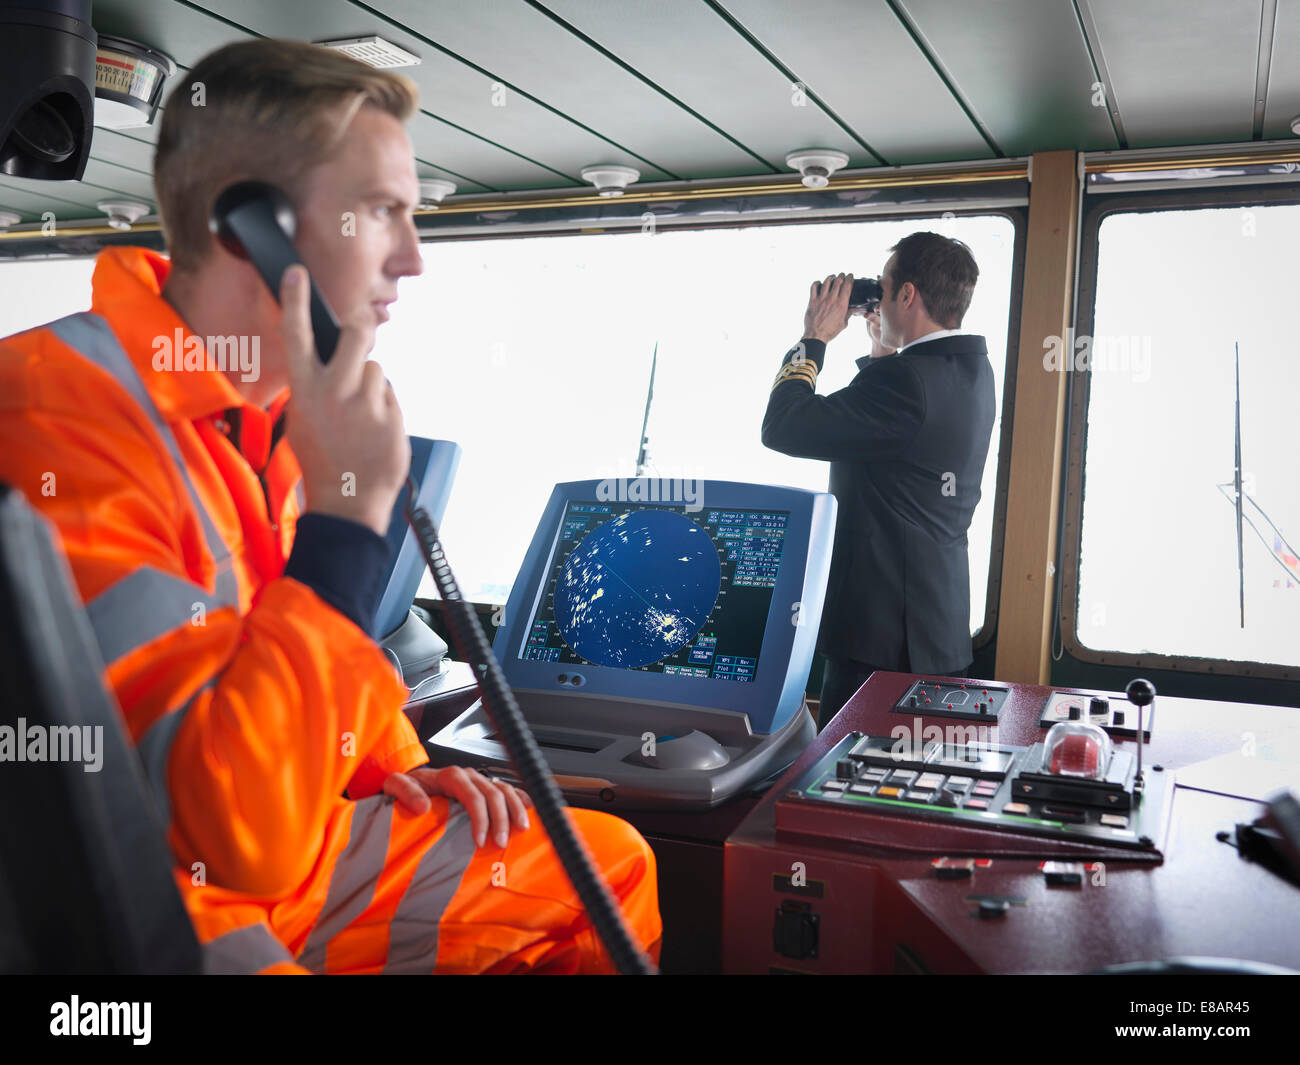 Ship worker using telephone and captain on ship's bridge - Stock Image